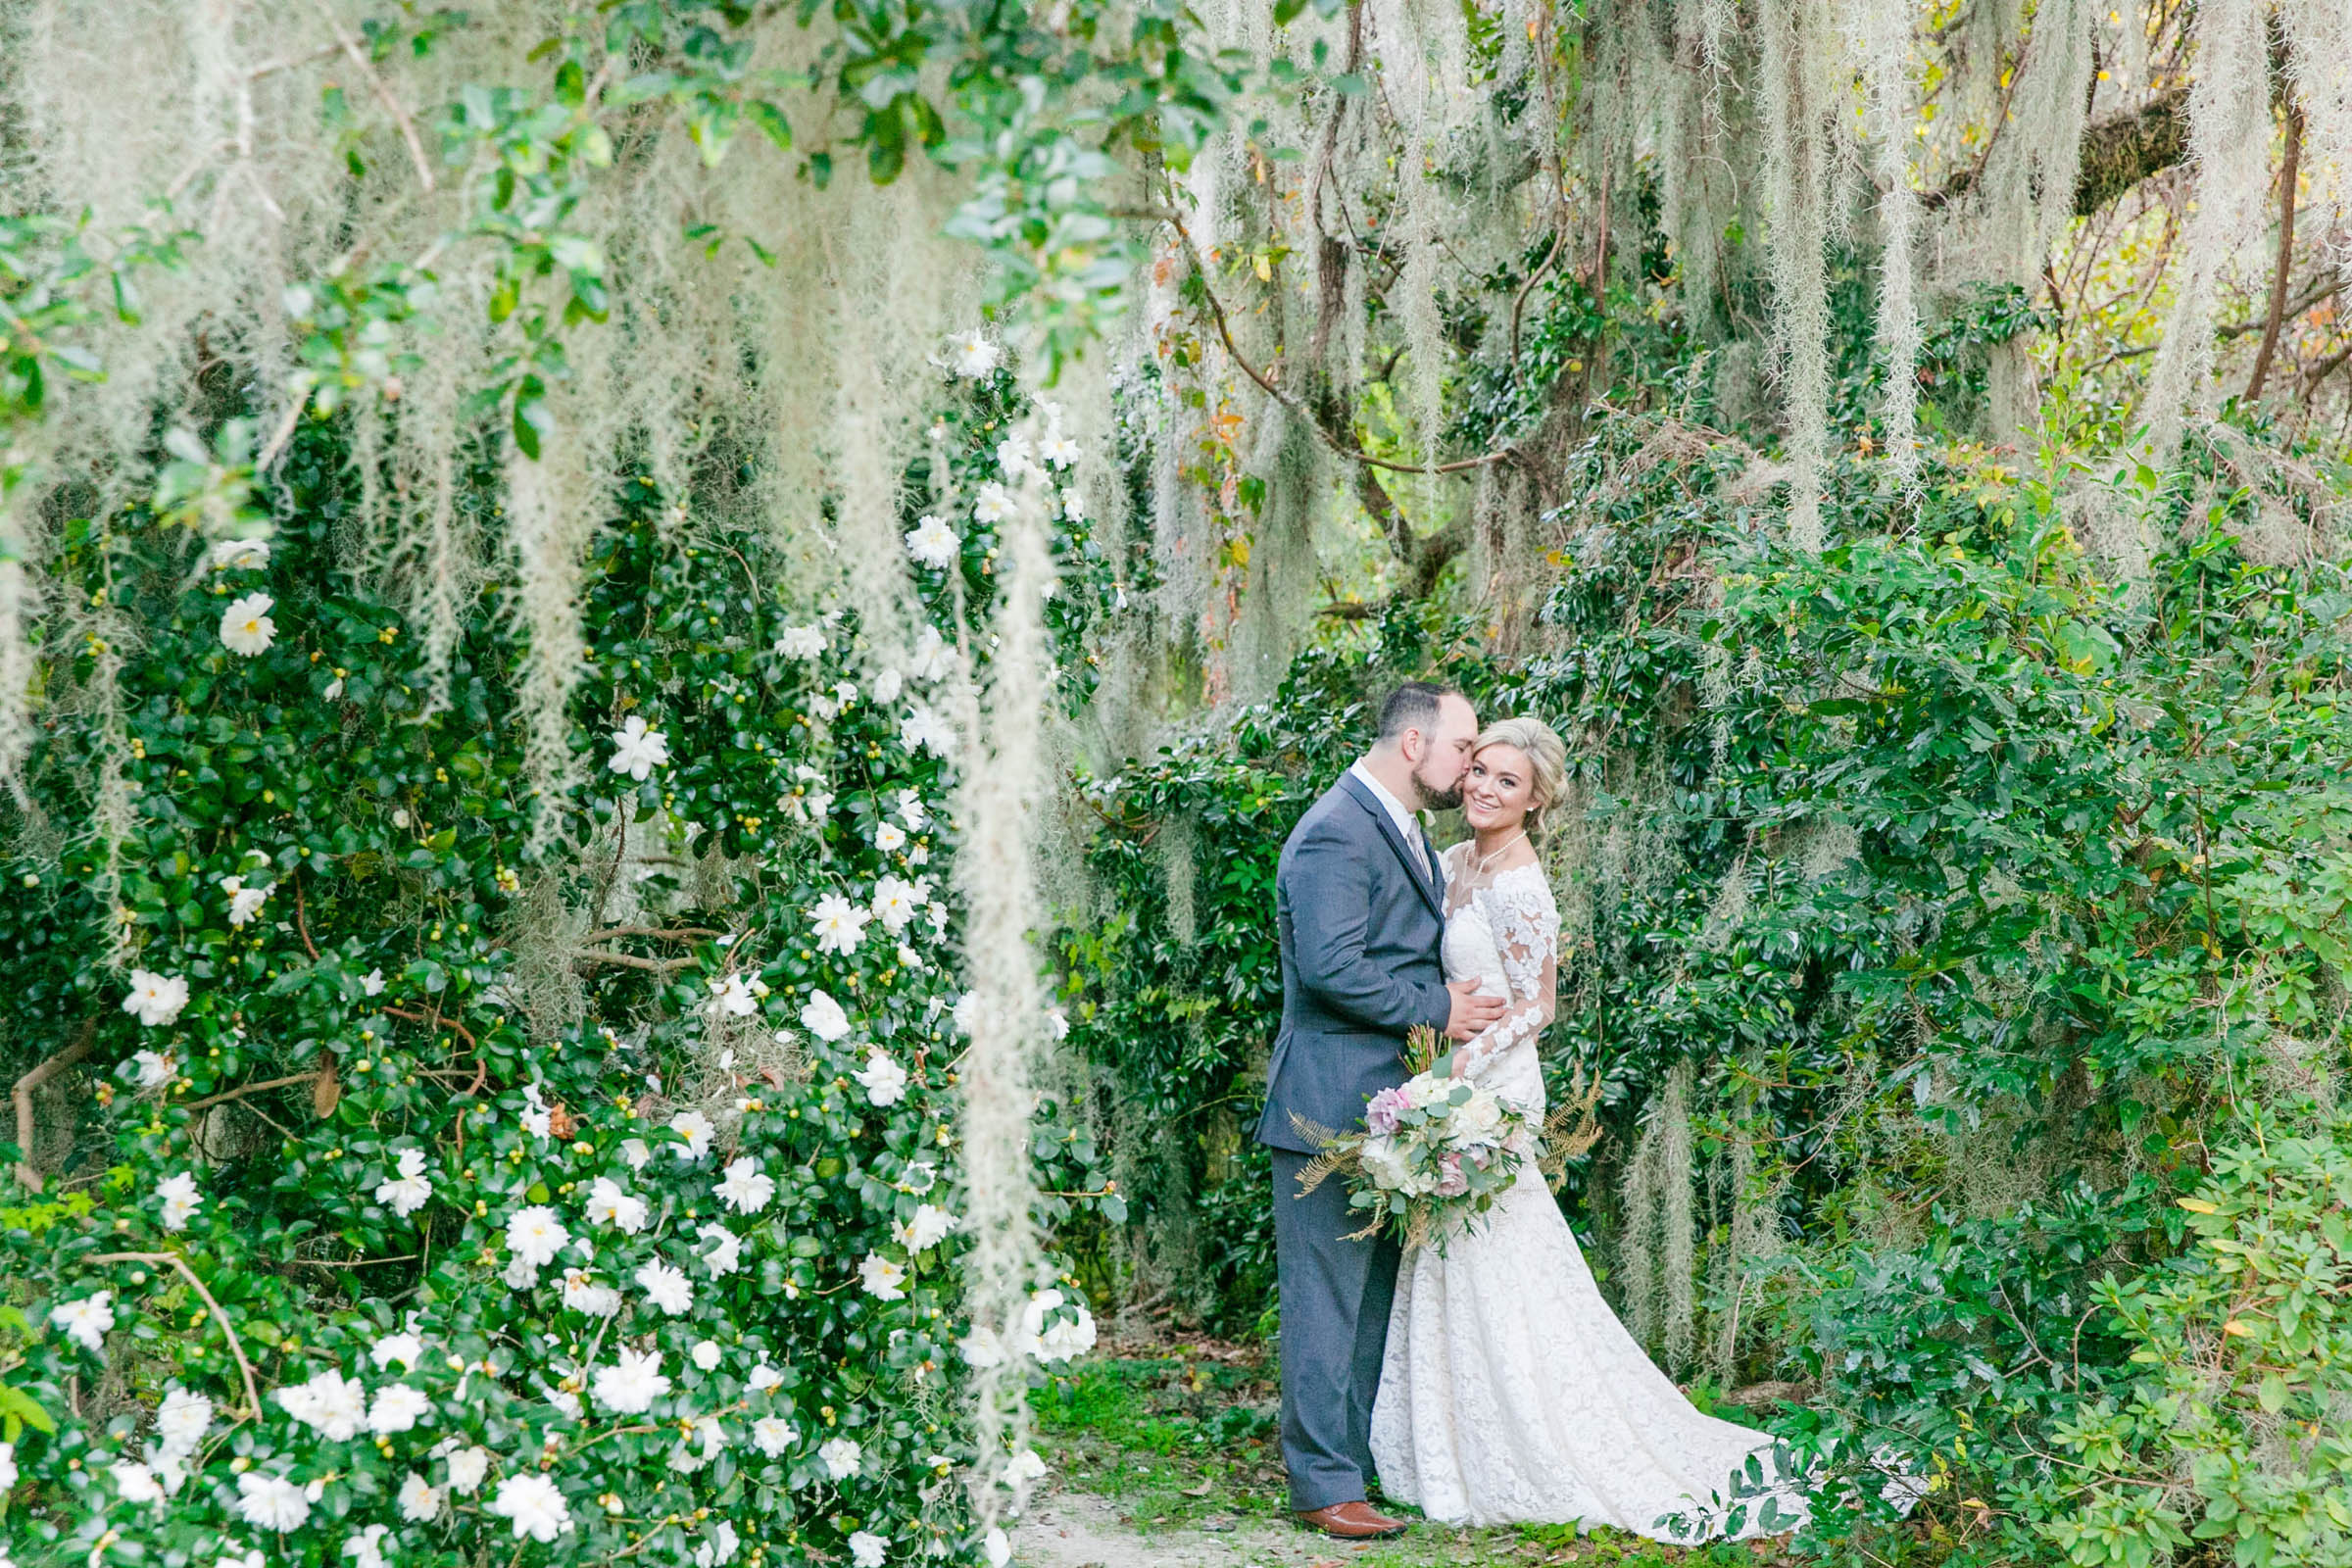 Couple kiss in spanish moss fairytale setting - photo by Dana Cubbage Weddings